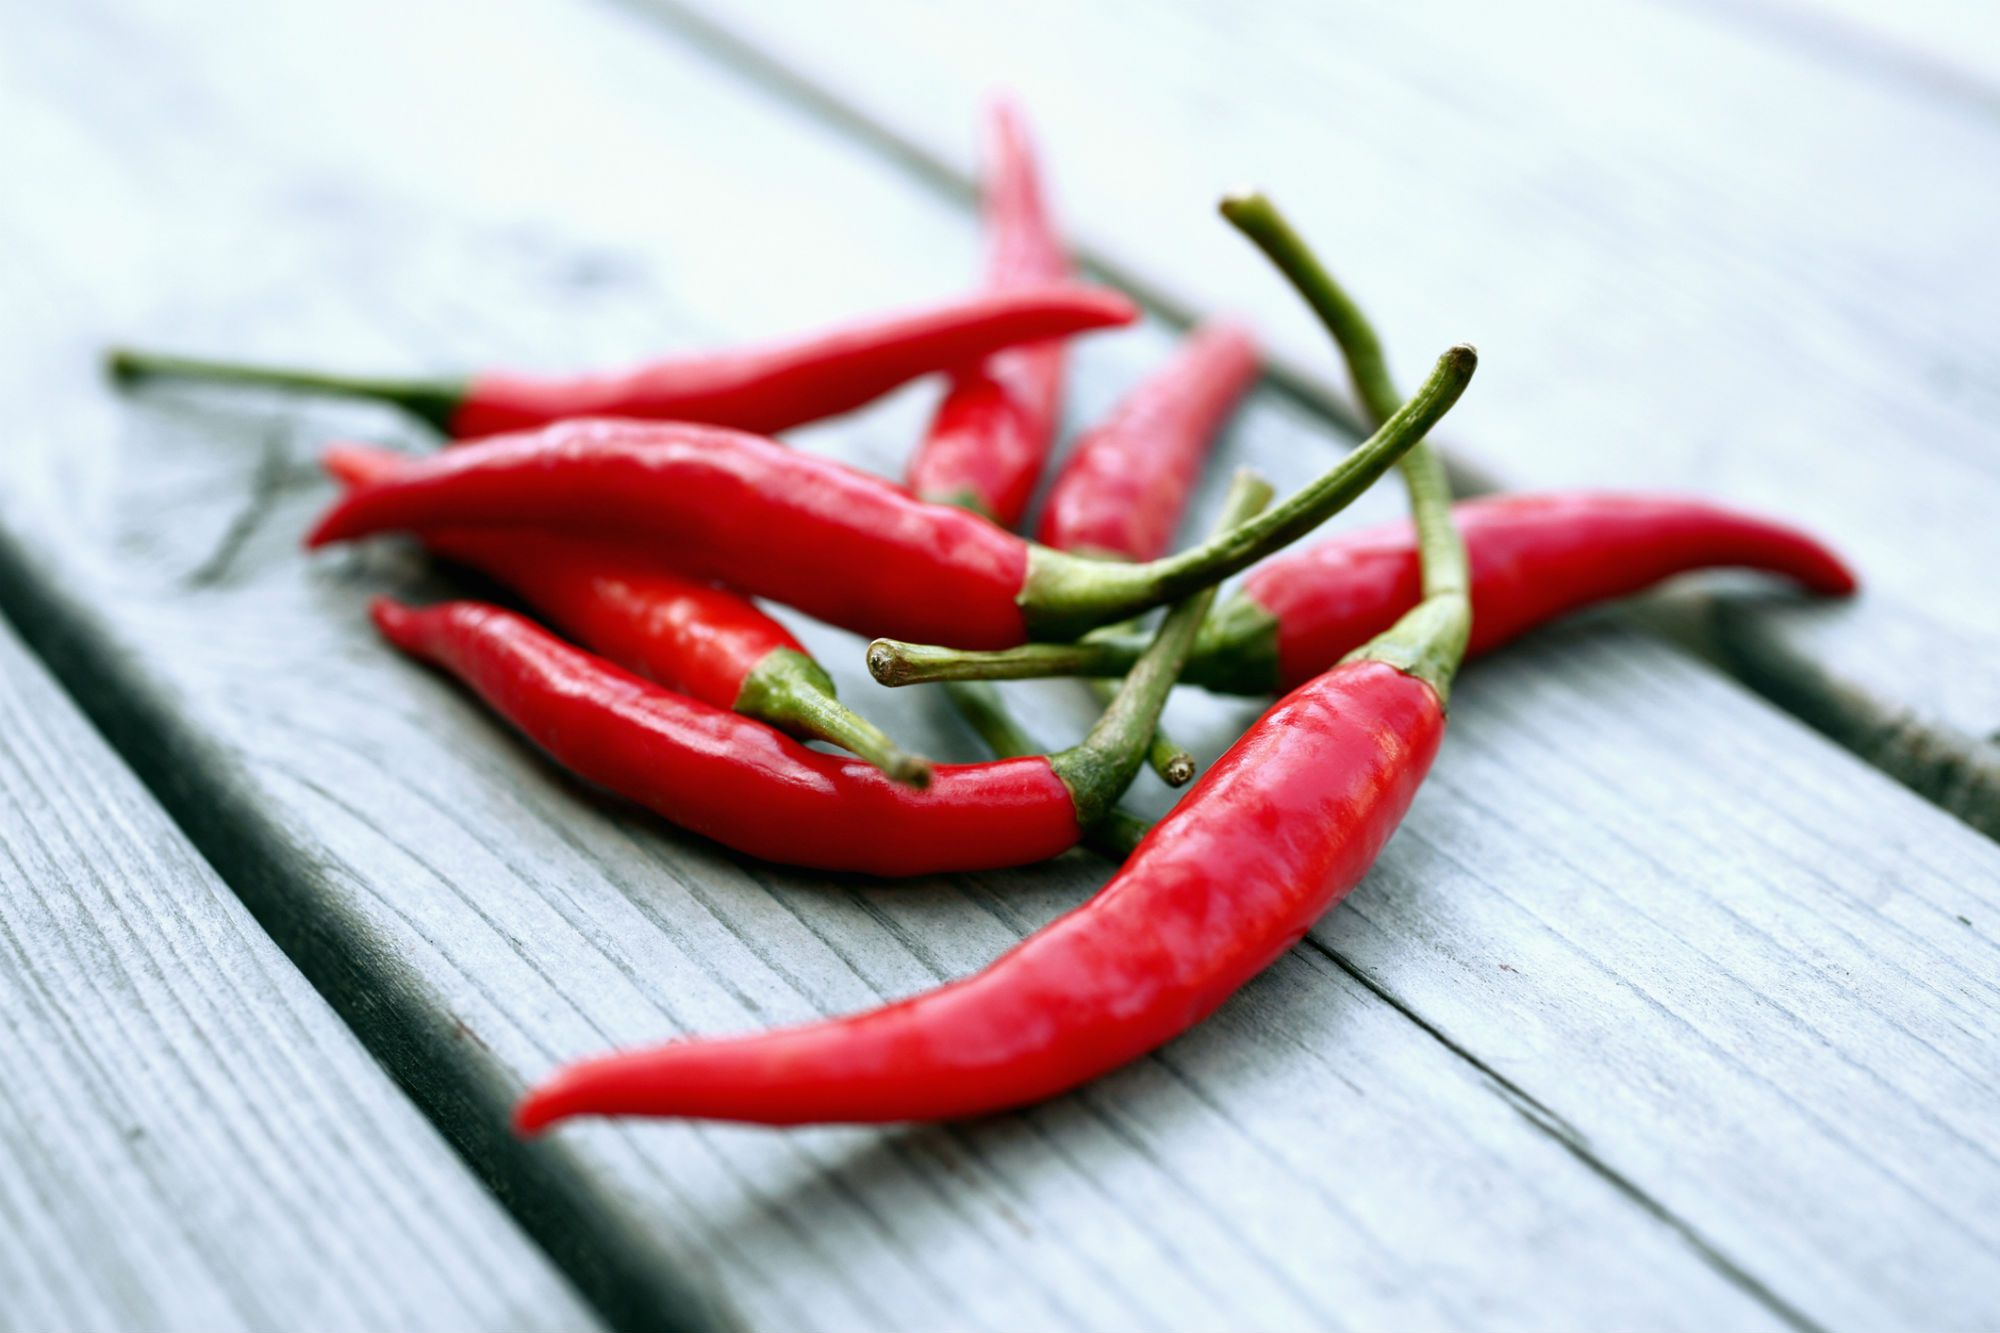 all about scotch bonnet hot chili peppers